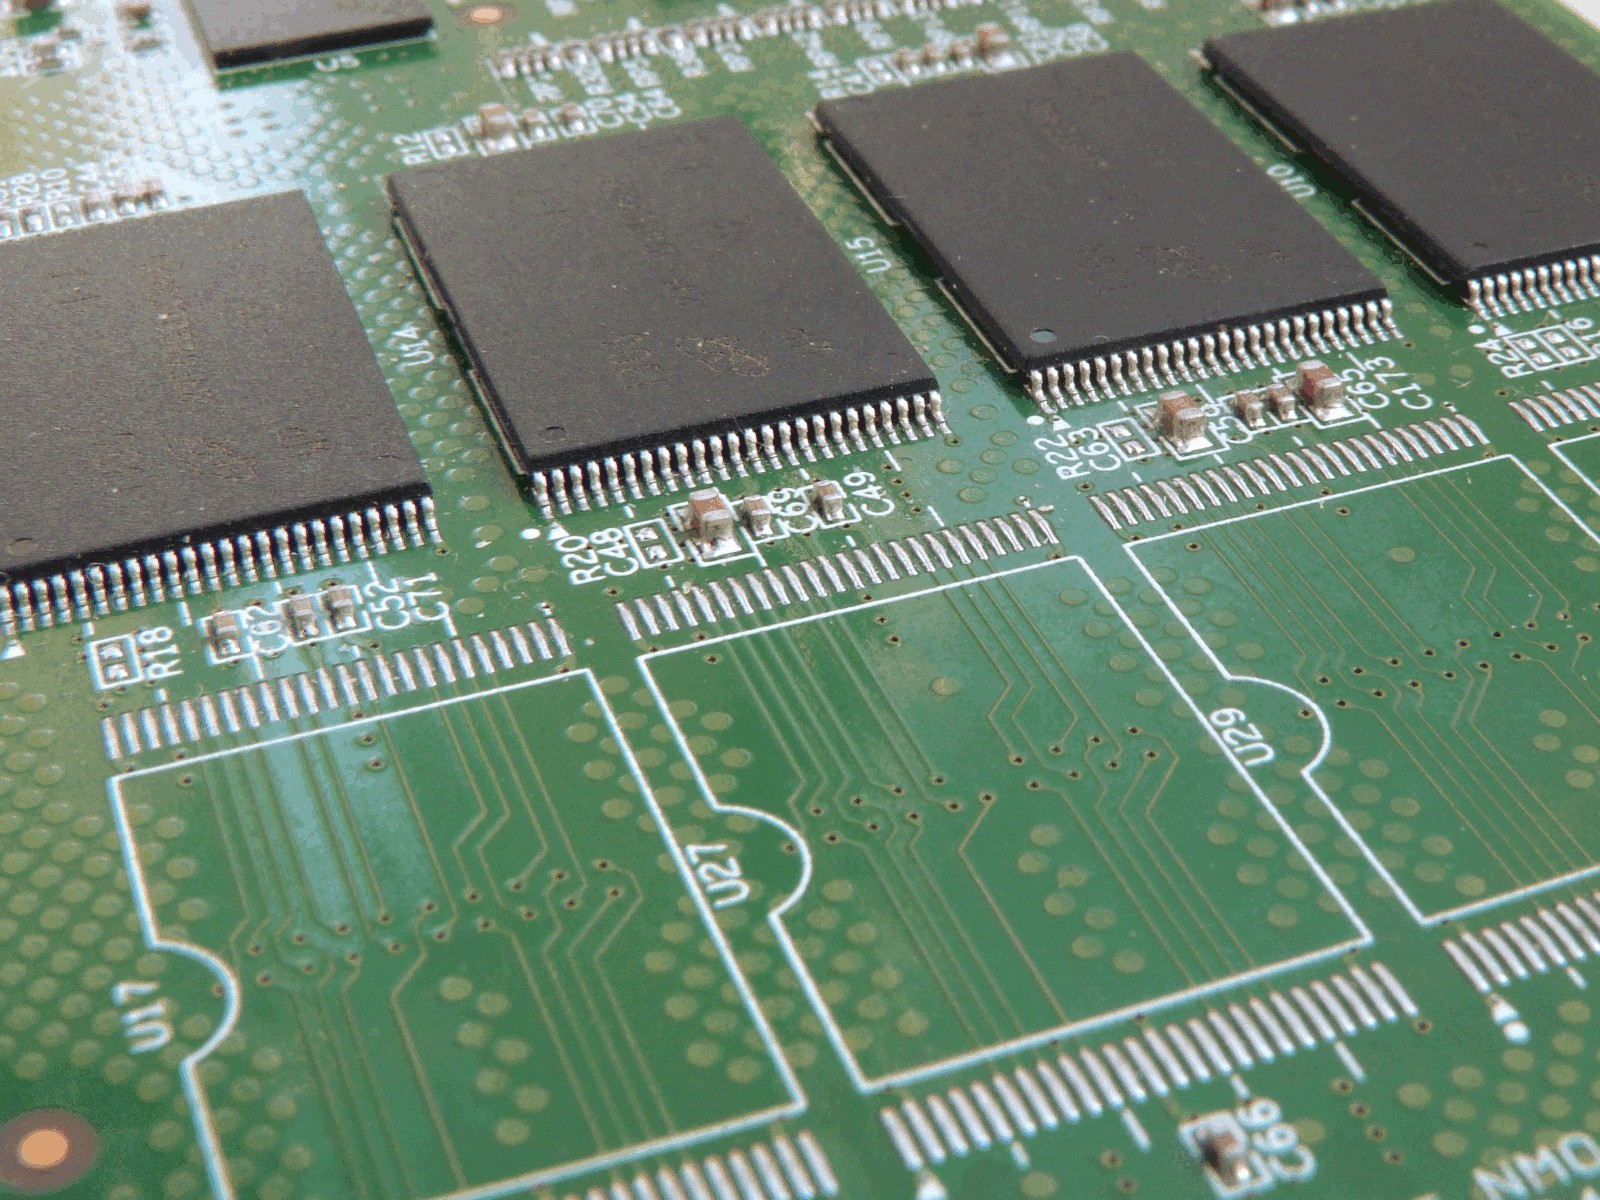 Footprint Electronics Wikipedia Buy Schematic Diagramsmt Machineprinted Circuit Board Product On